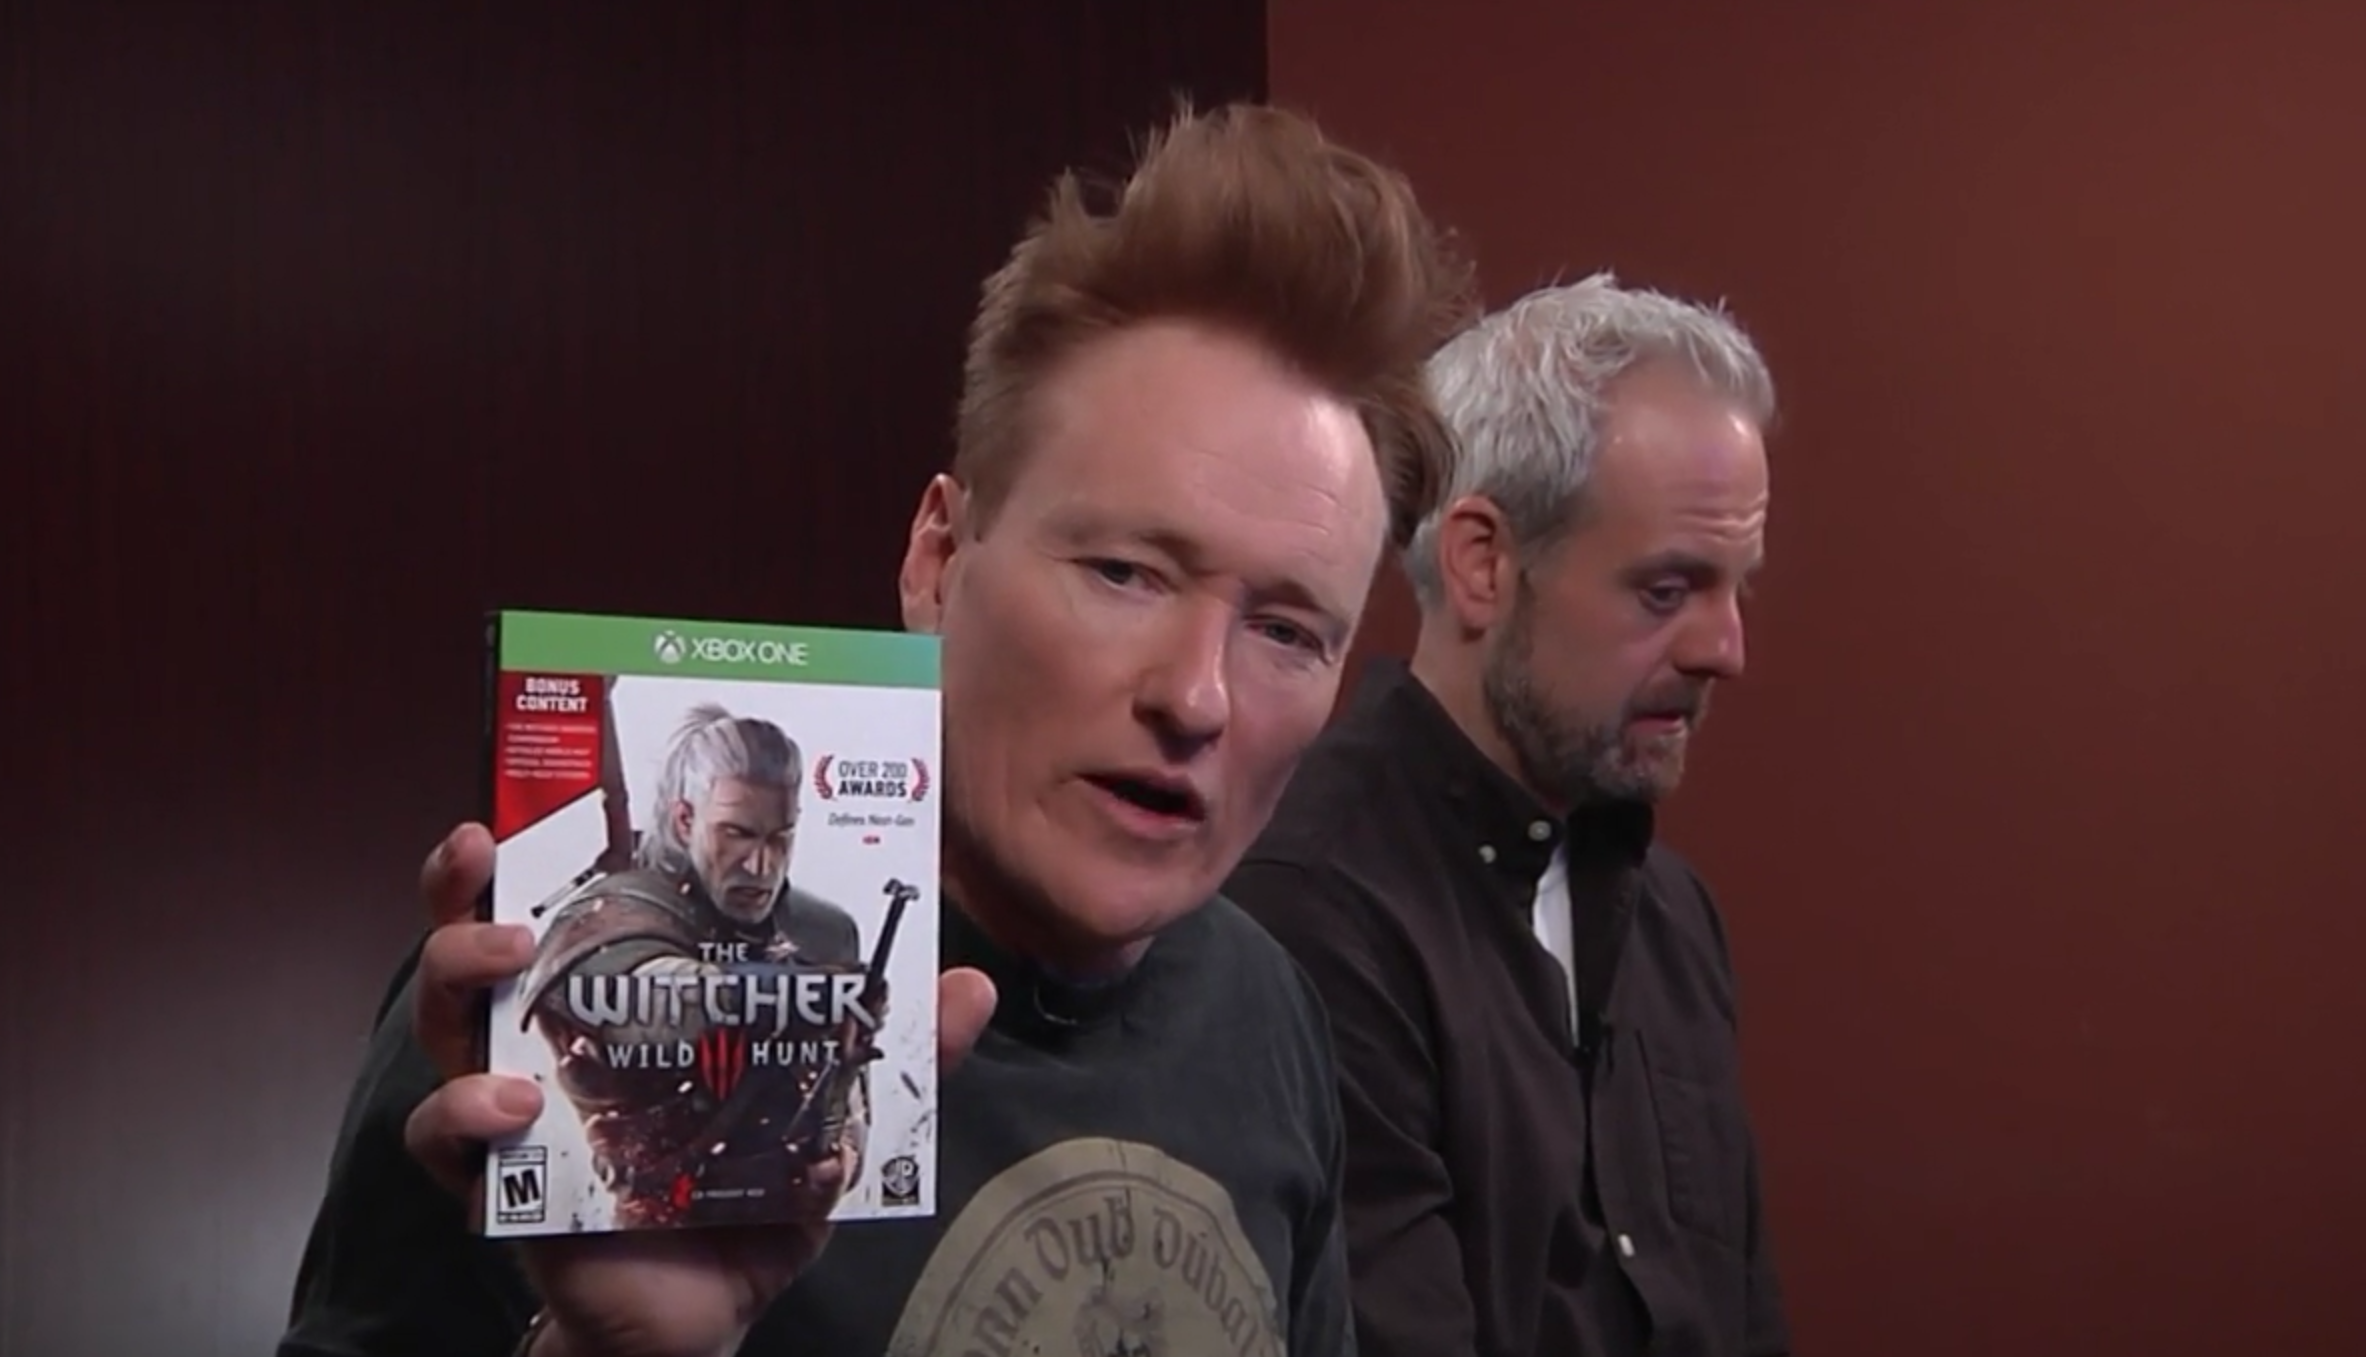 Sex hunt watch 3 wild all scenes witcher the Can I